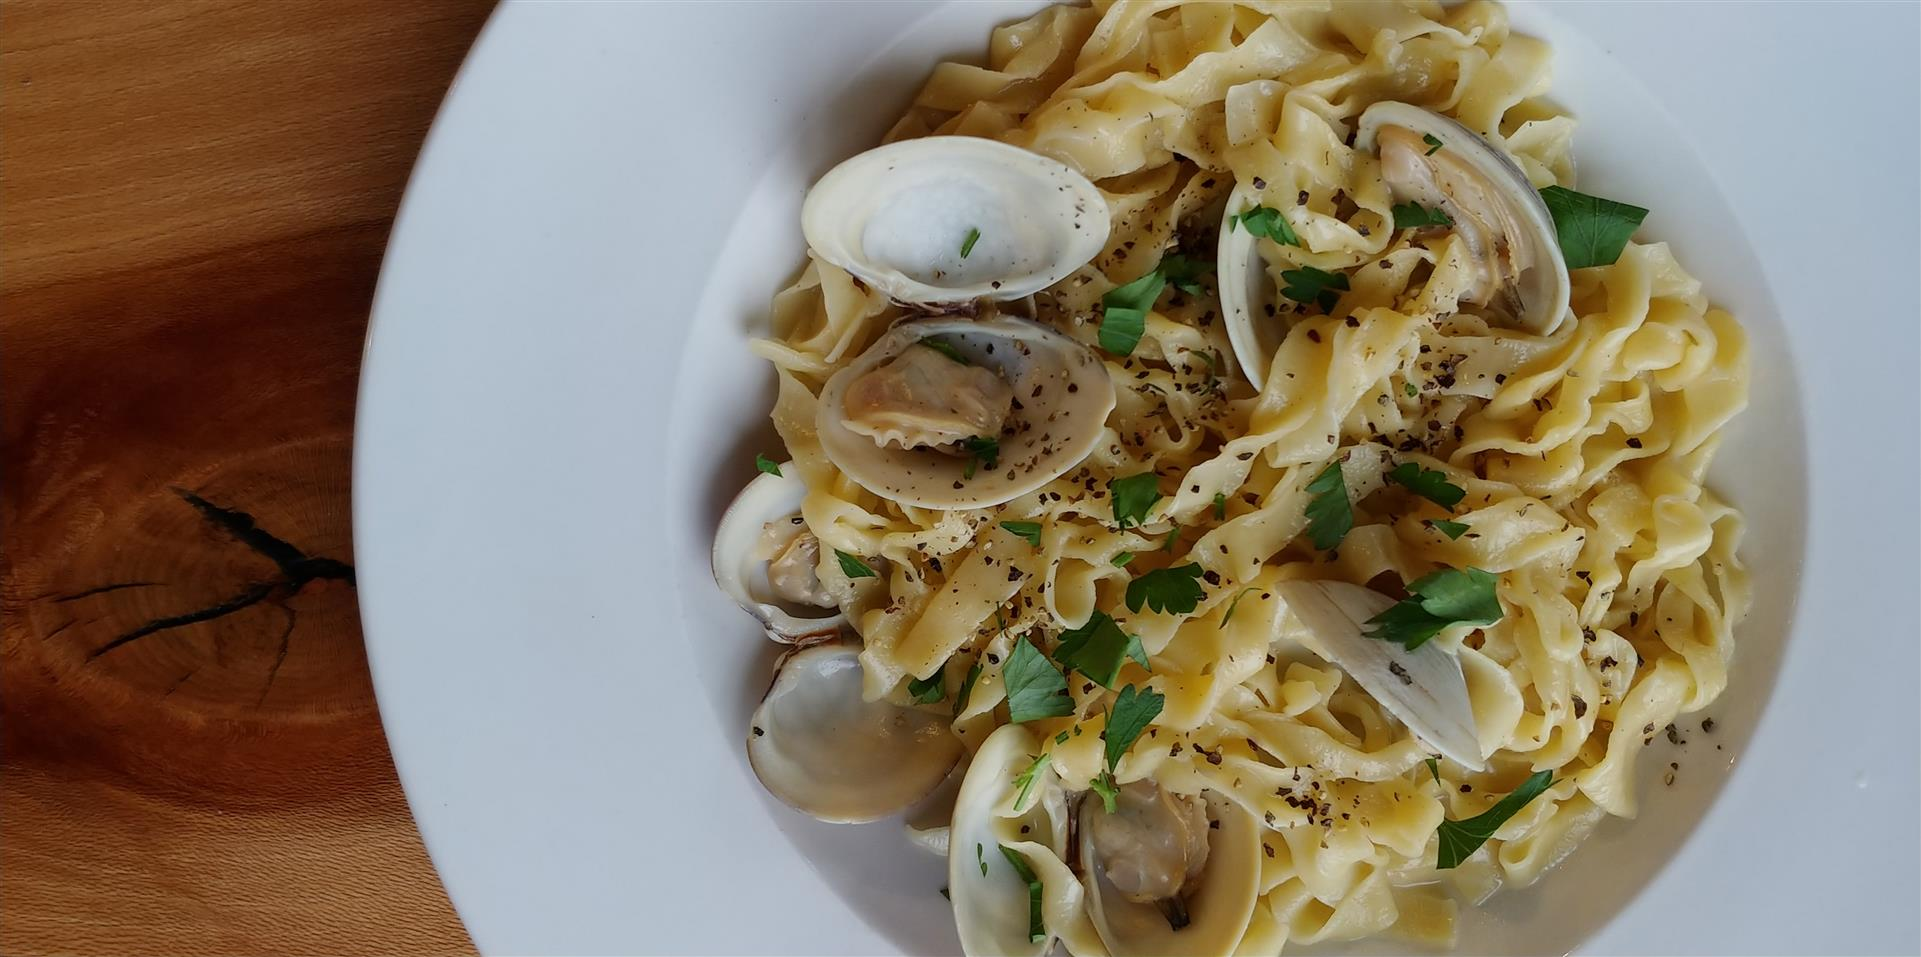 Linguine with clam sauce and clams